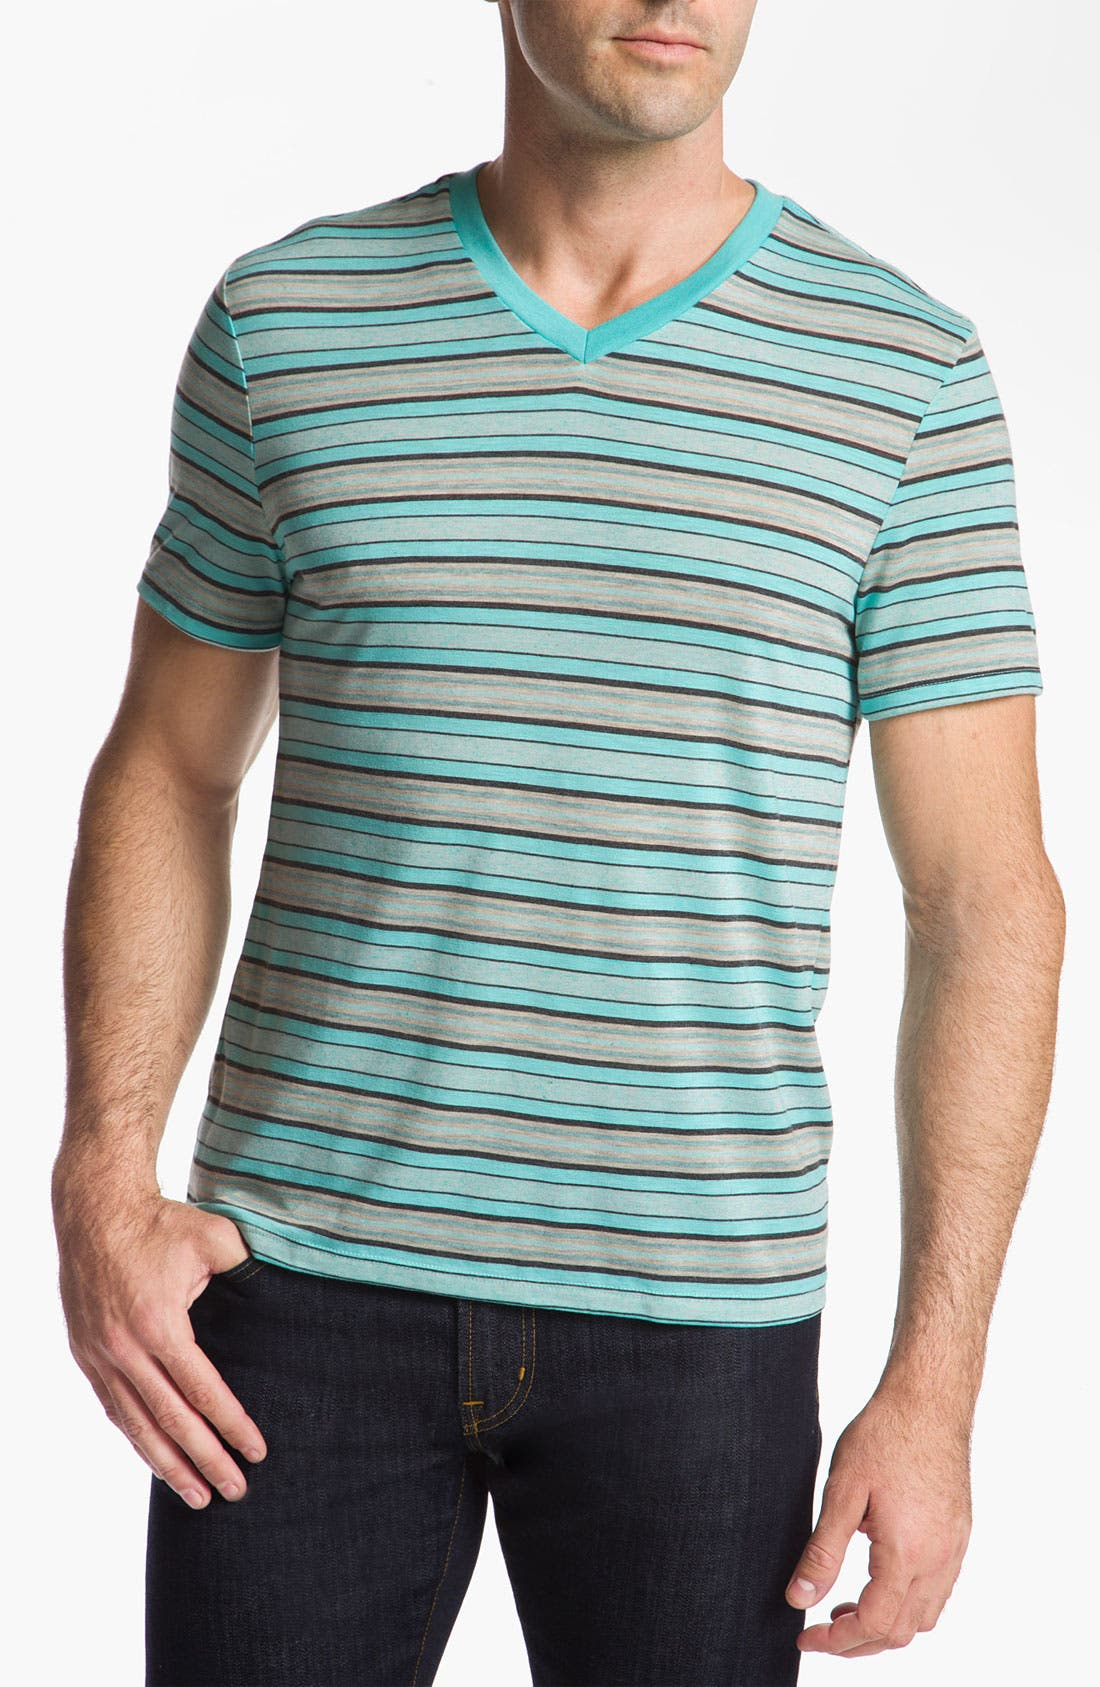 Alternate Image 1 Selected - The Rail by Public Opinion Stripe T-Shirt